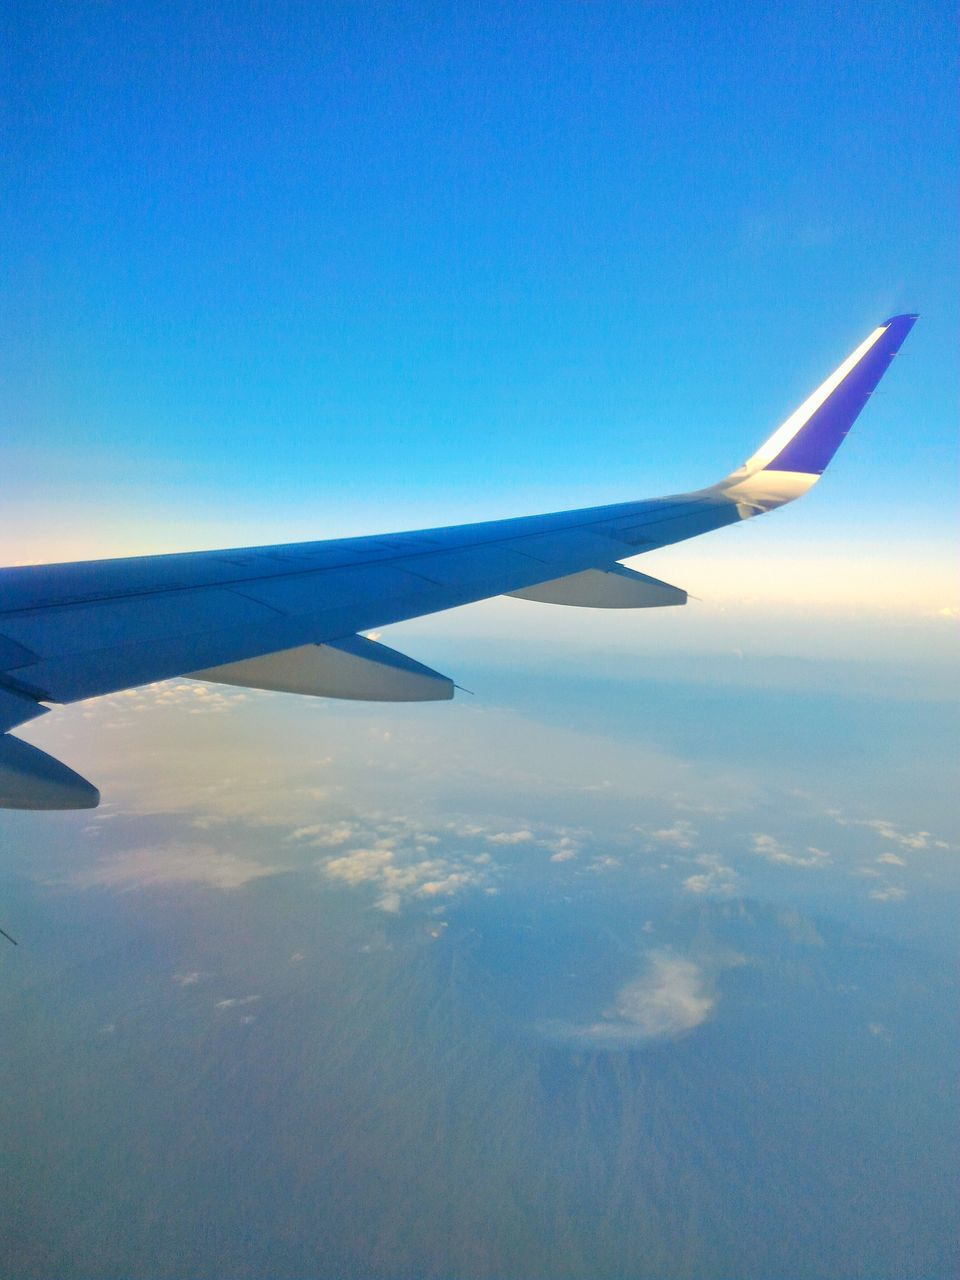 airplane, aerial view, airplane wing, journey, blue, transportation, flying, air vehicle, nature, travel, sky, no people, aircraft wing, scenics, beauty in nature, mid-air, outdoors, tranquility, day, tranquil scene, landscape